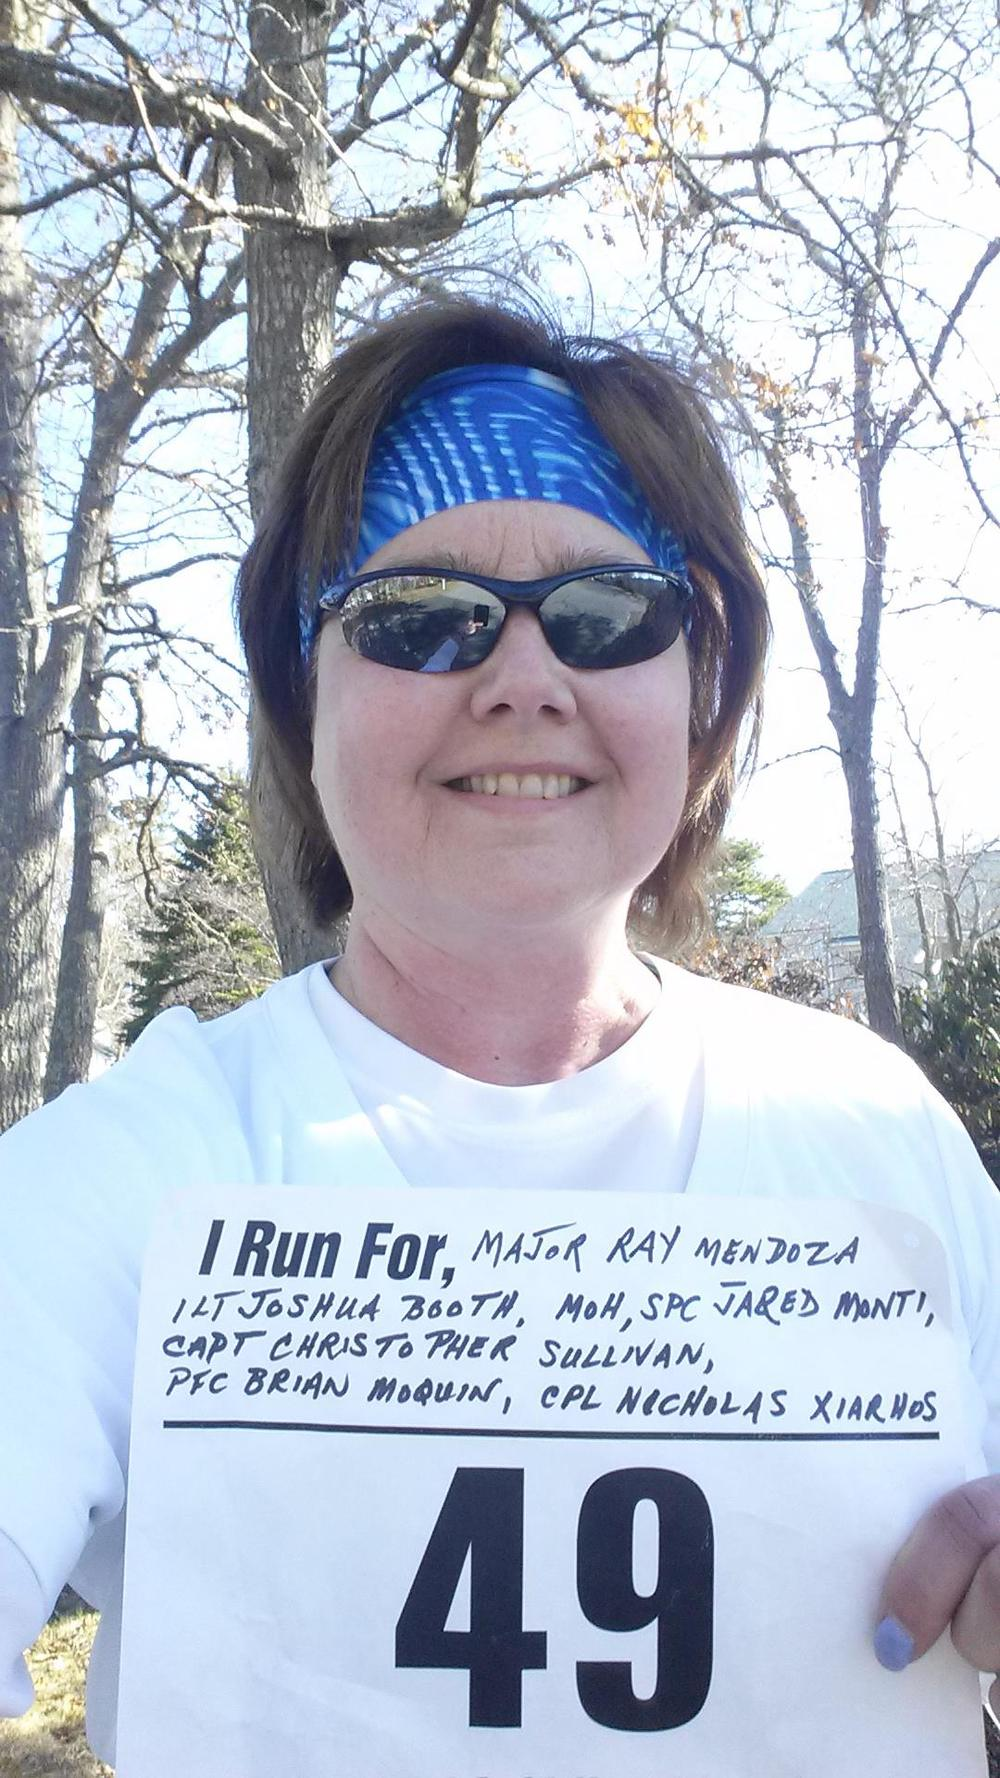 "Jo Ann and Andrew Bauer (not pictured), making their contributions in Fredericksburg, VA. As a Blue to Gold Liason for Central and Western Massachusetts, she has had the honor and privilege of meeting many Gold Star Families. -- ""My total miles 14.1; each mile holding a specific memory to each brave soul and their families."" Major Ray Mendoza, USMC 1LT Joshua Booth, USMC MOH, SPC Jared Monti, USA Capt Christopher Sullivan, USA Pfc Brian Moquin, USA Cpl Nicholas Xiarhos, USMC"